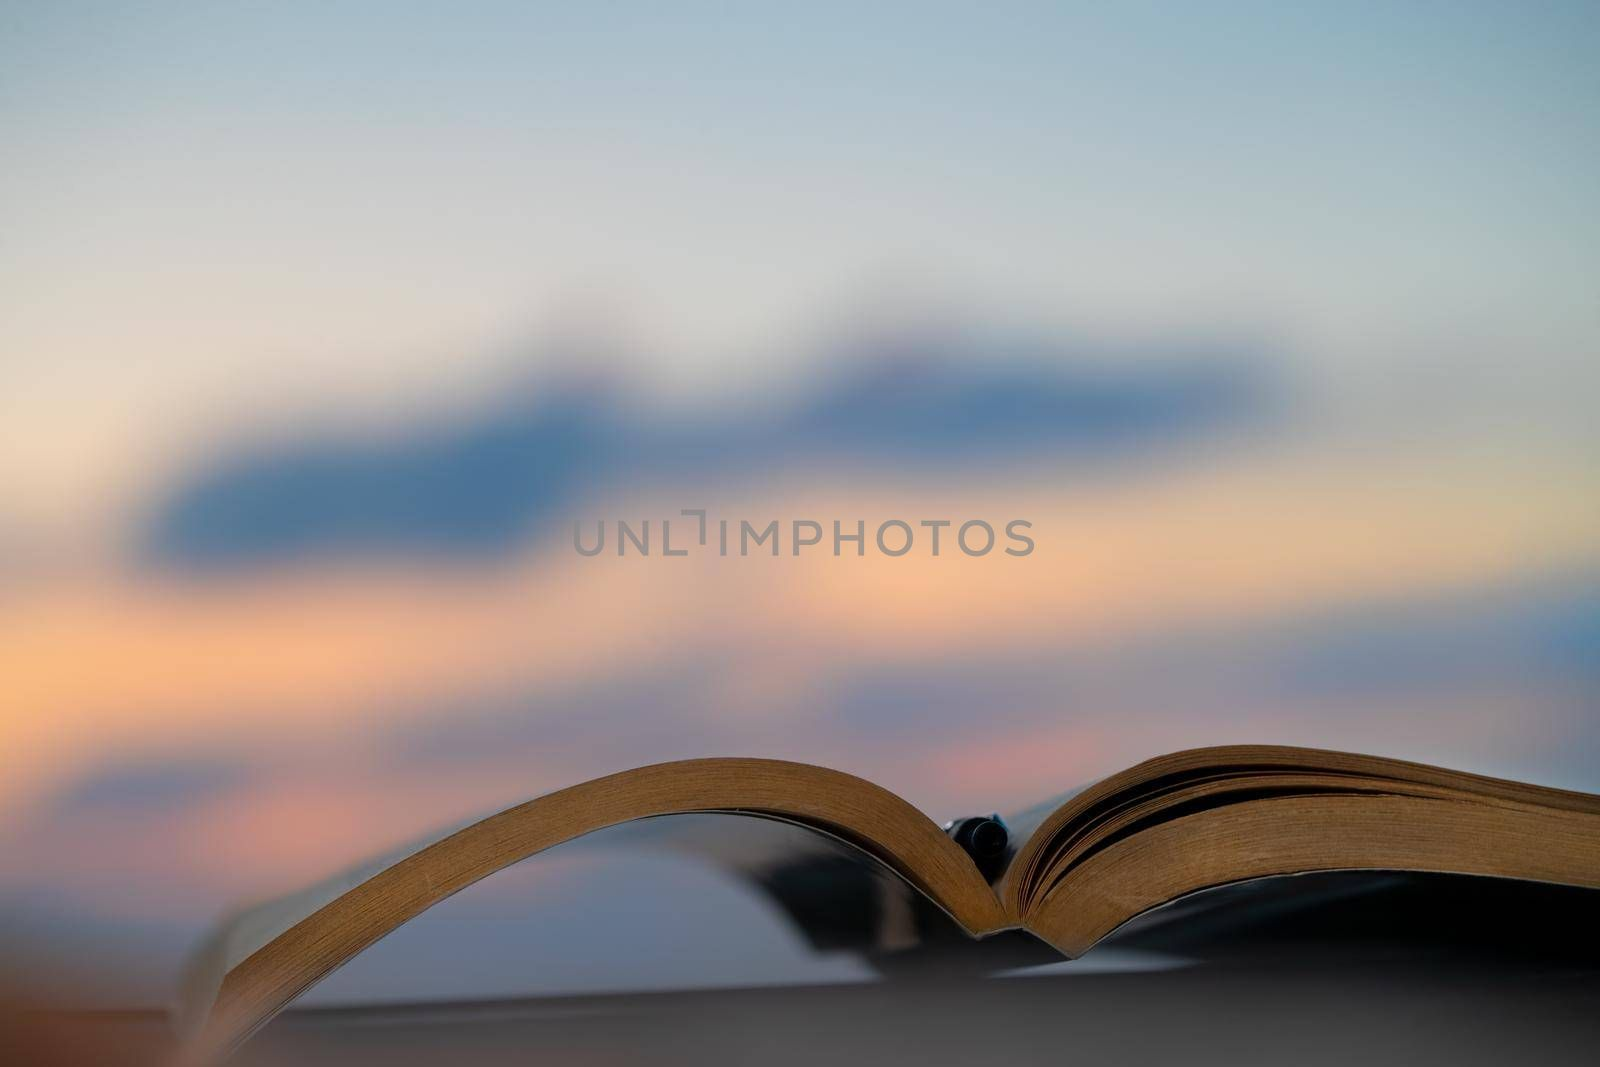 Spend a Nice Evening Reading an Interesting Book Outdoors in Mild Sunset Light. Keep a Pen to Mark the Most Important Things. Calm Pleasant Pastime.